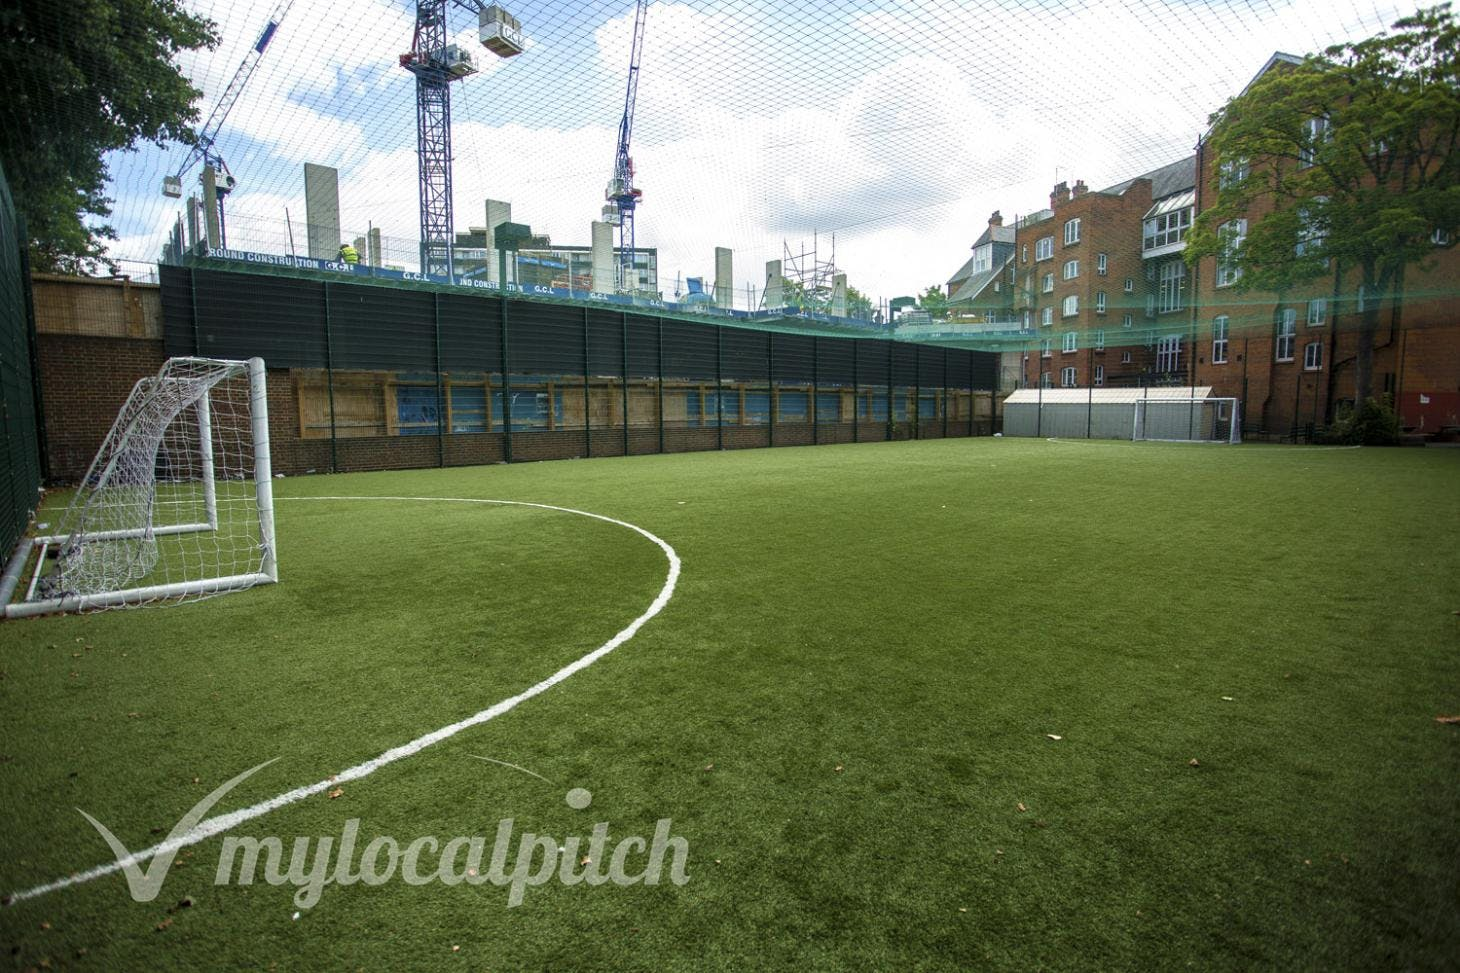 St Augustine's Sports Centre 5 a side | 3G Astroturf football pitch